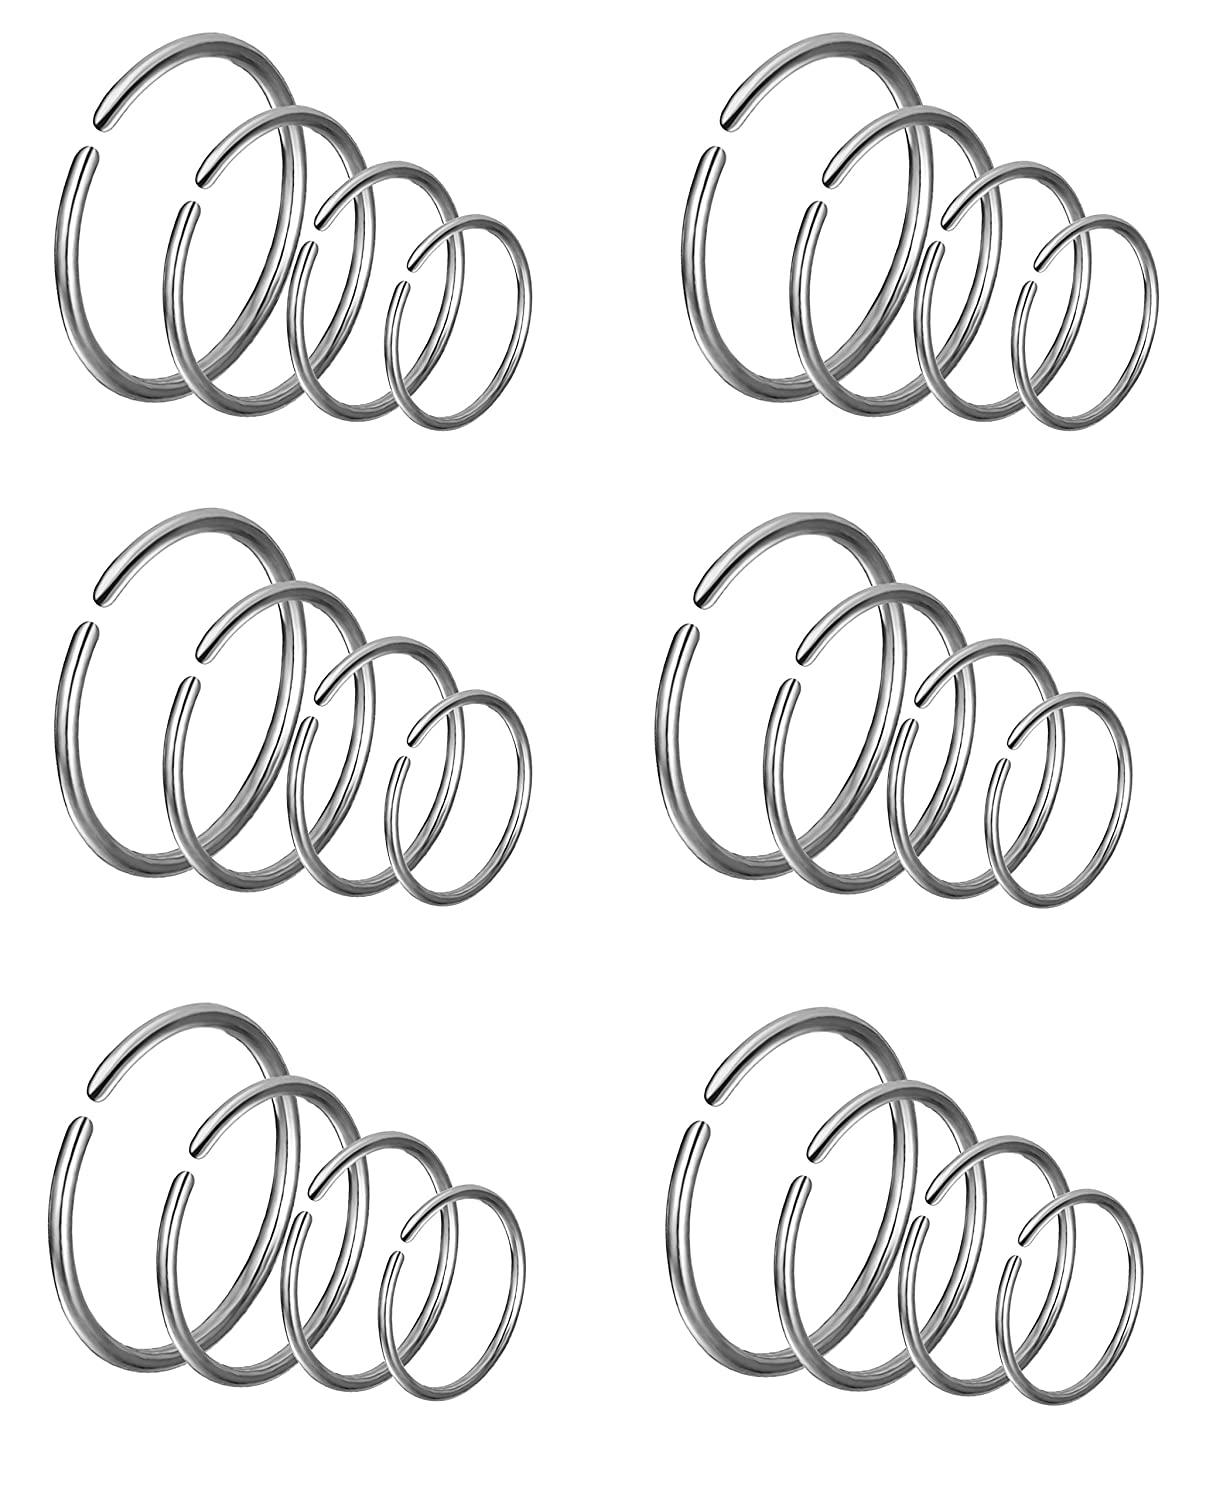 Ofeiyaa 24Pcs 18G 20G 22G Stainless Steel Nose Ring Hoop Cartilage Earrings Septum Ear Traguse Lip Ring Body Piercing Jewelry 6-12mm Slive Stone Afeiyaa BH-S24-06